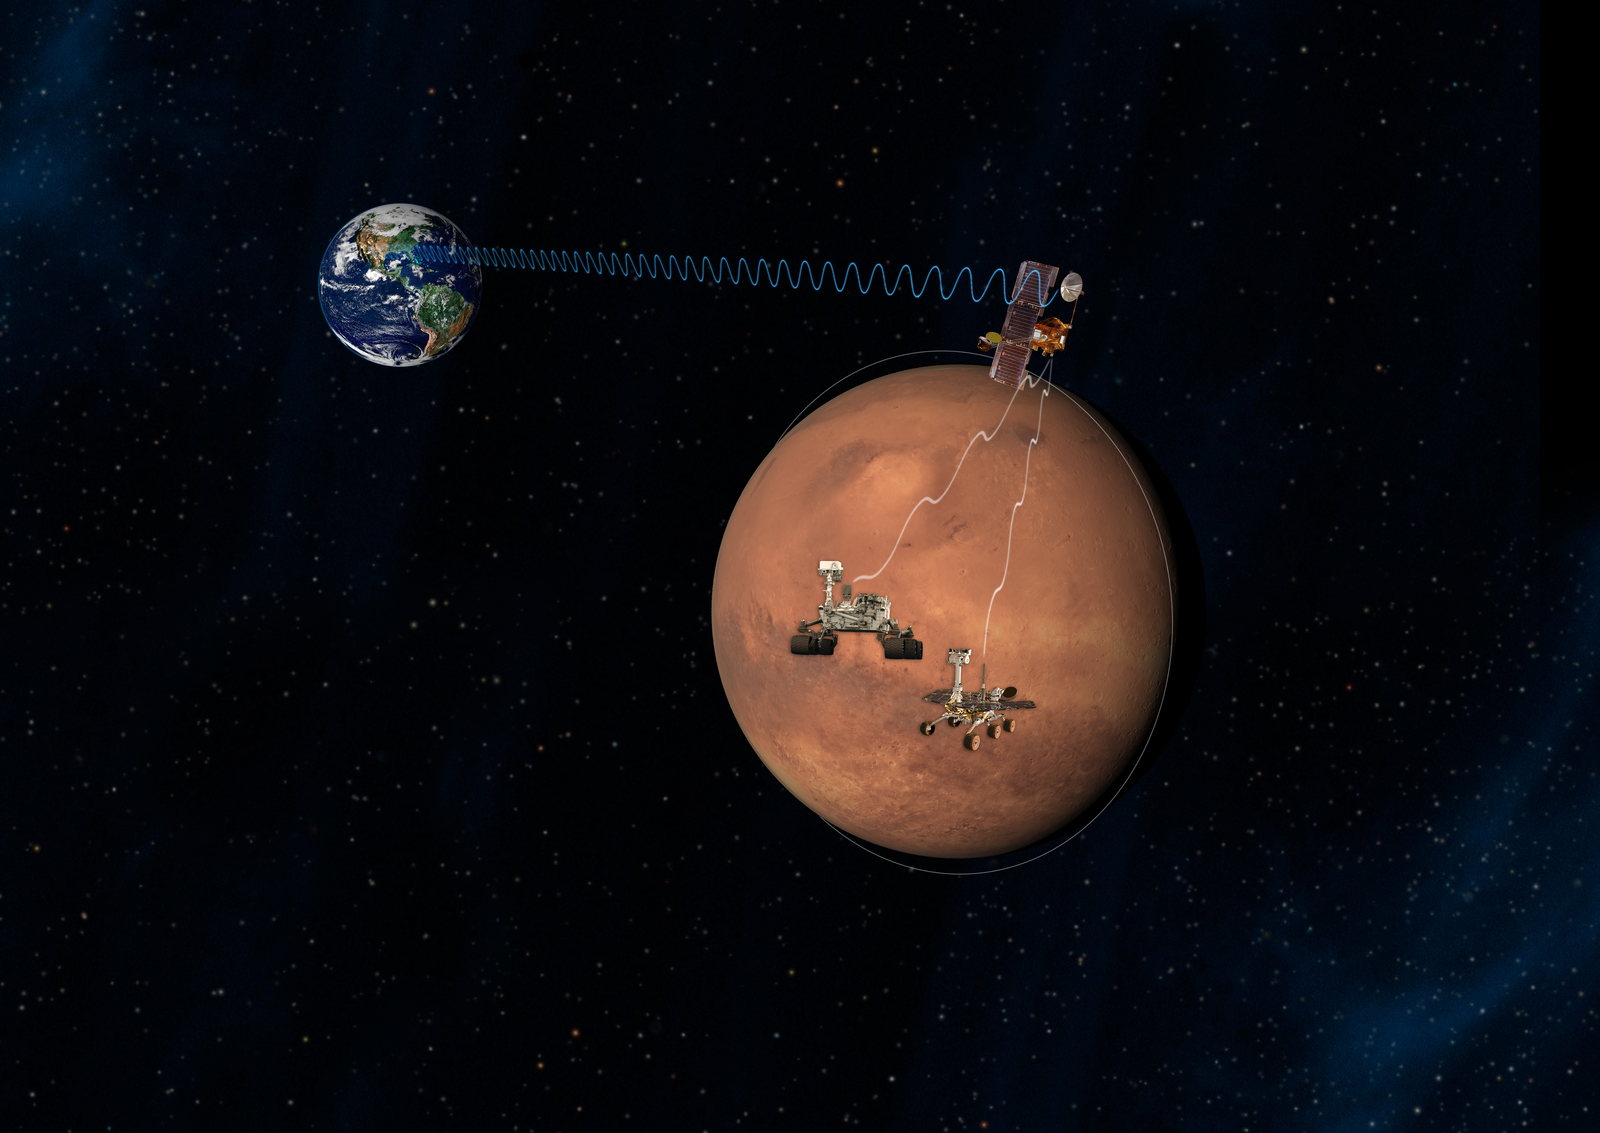 Providing Telecommunications Support to Other Mars Missions.